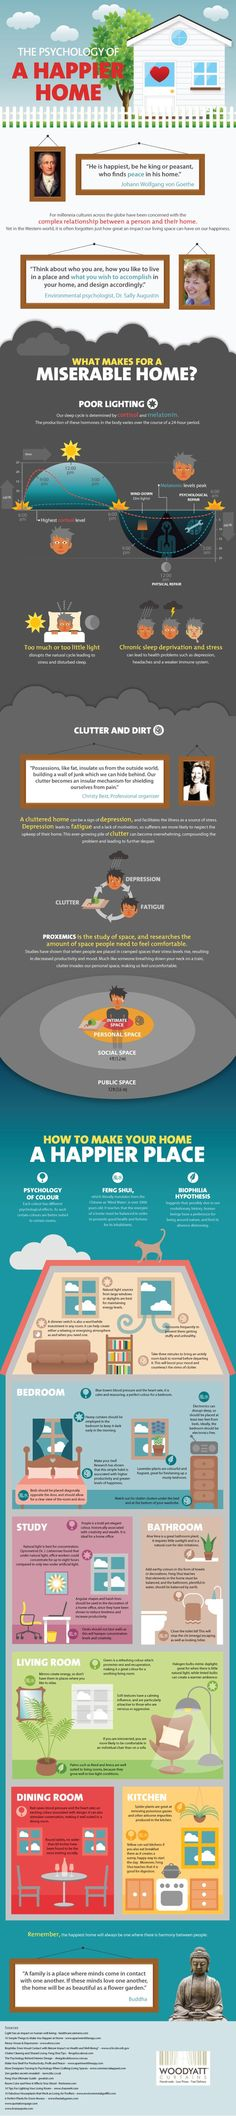 How to create a happier home [infographic] | Apartment Geeks